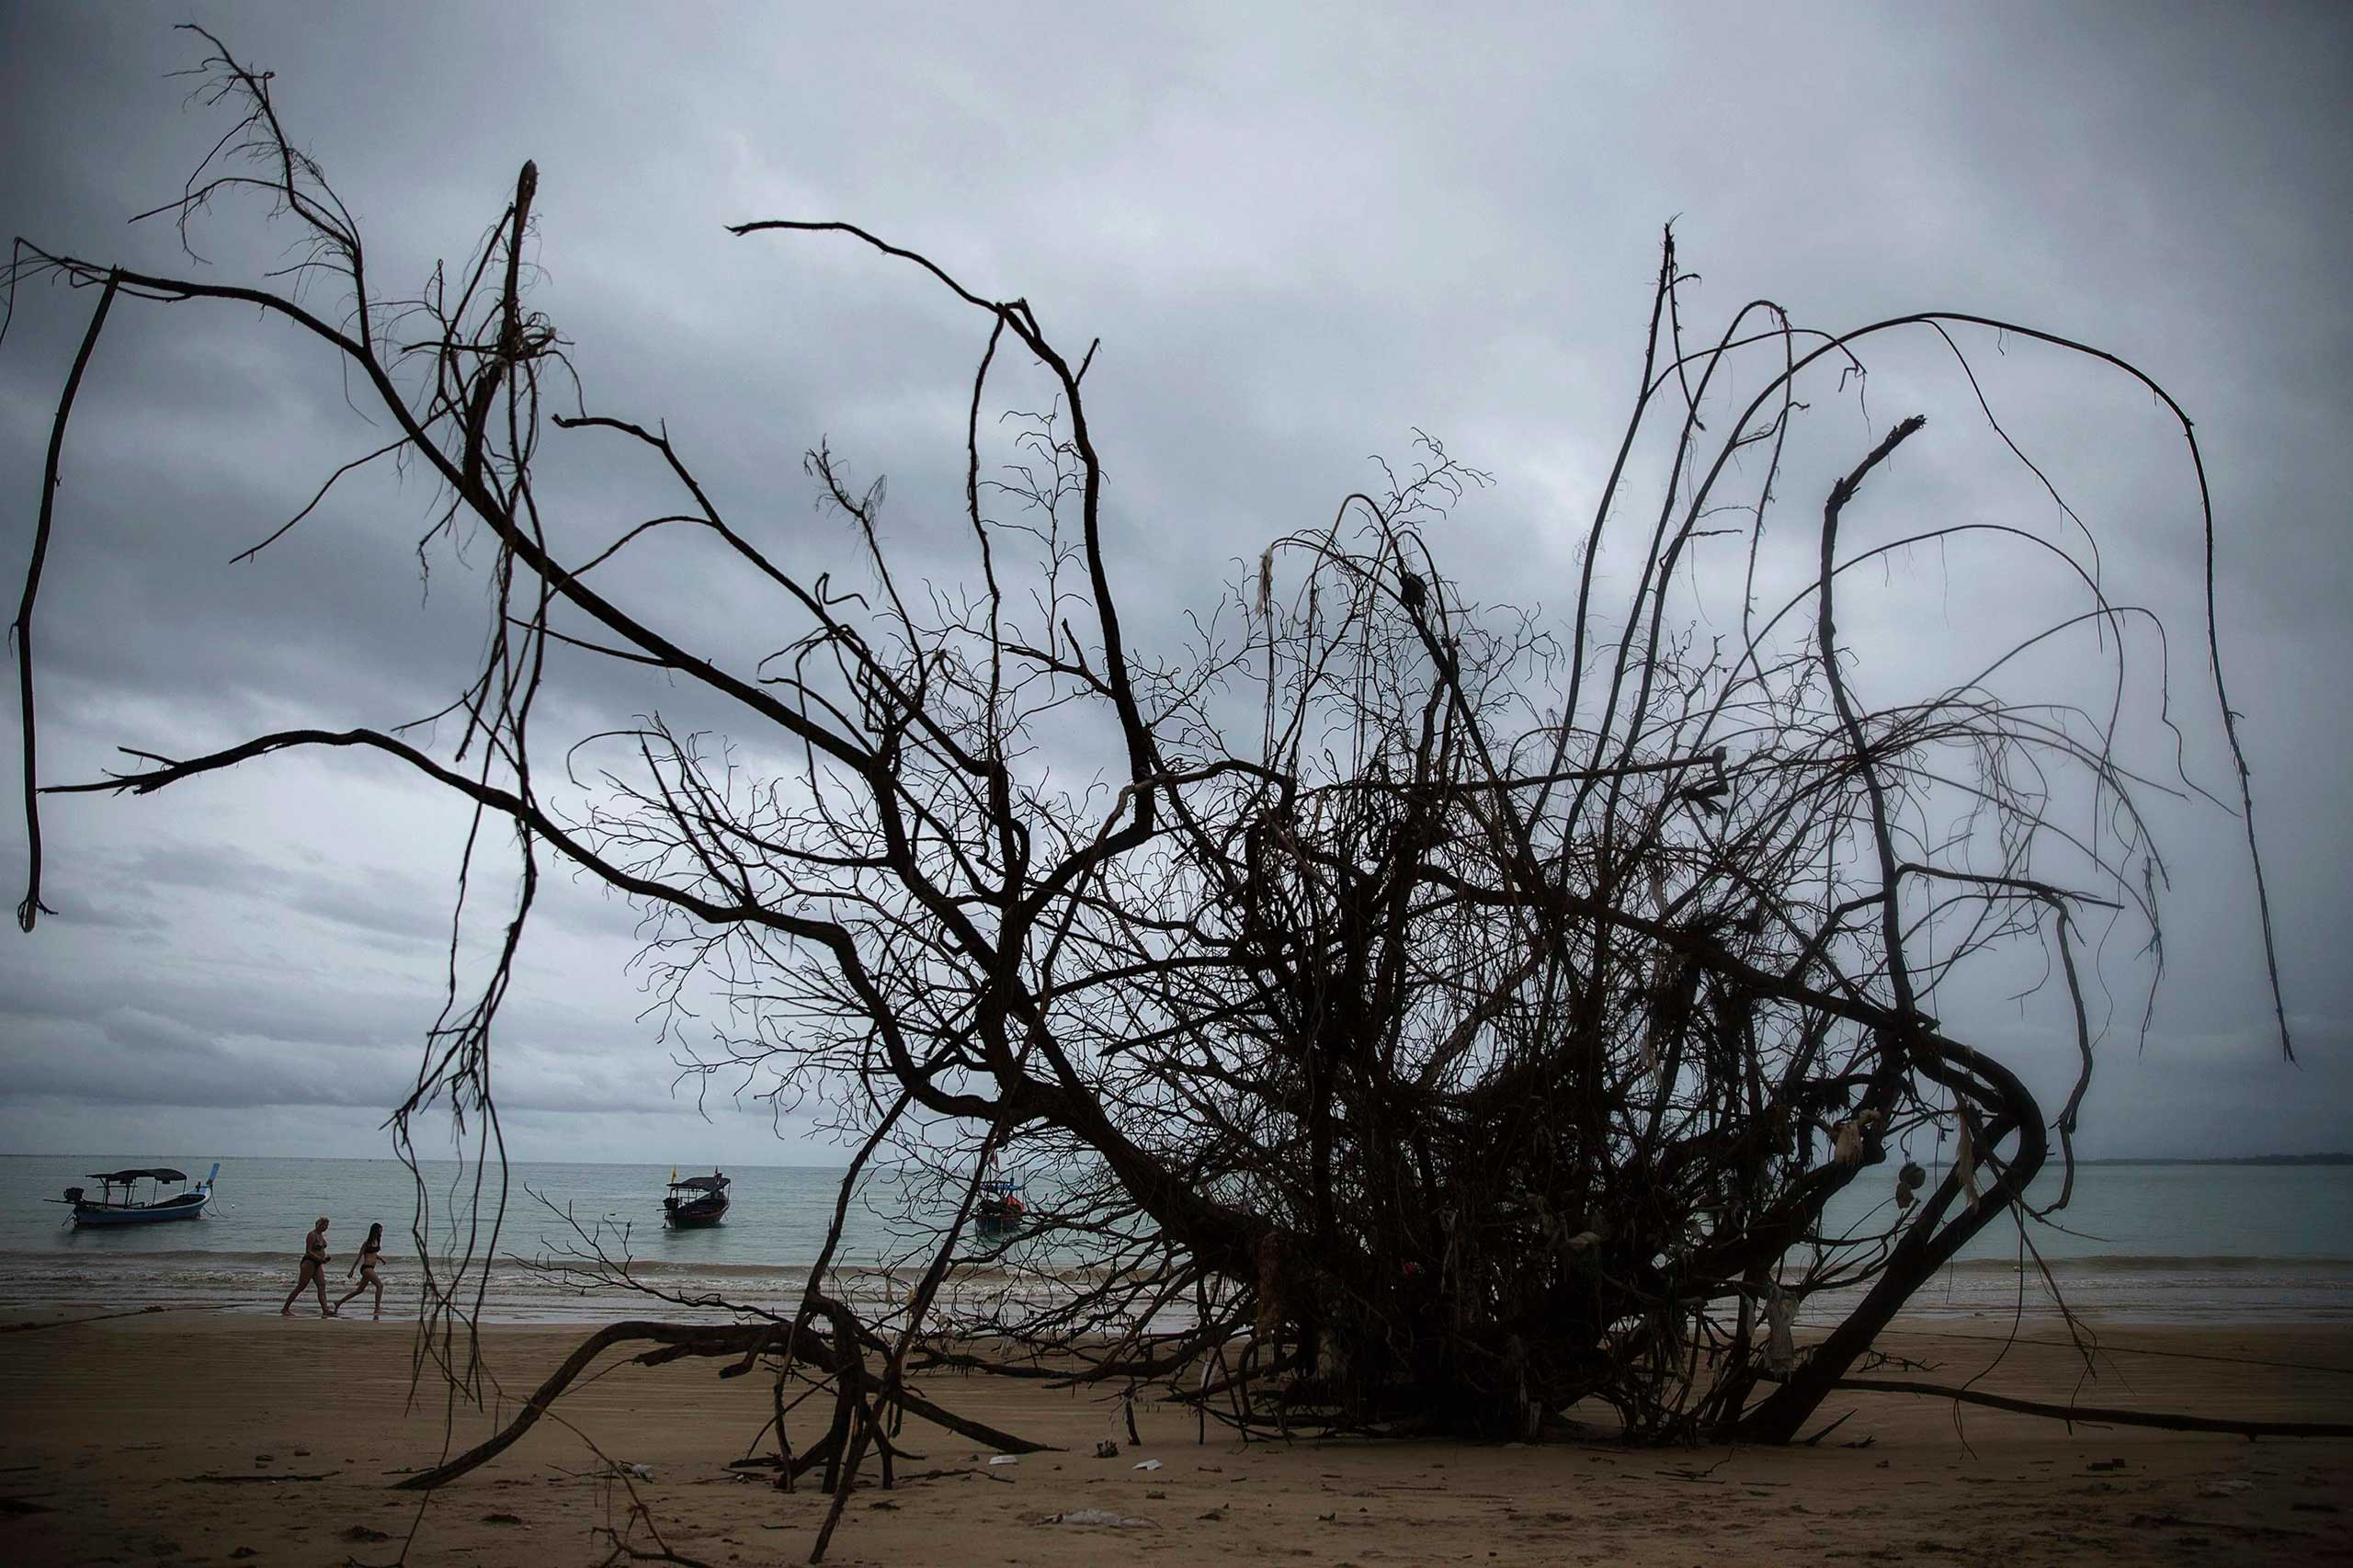 Dec. 14, 2014. Foreign tourists walk on a small beach with fallen big trees and damage still visible from the 2004 tsunami in Khao Lak, in Phang Nga province, about 110 km (68 miles) north of the resort island of Phuket. Thailand prepares to mark the tenth anniversary of the 2004 tsunami, the deadliest on the record, that killed at least 226,000 people in 13 Asian and African countries. In Thailand, over 5300 people were killed.